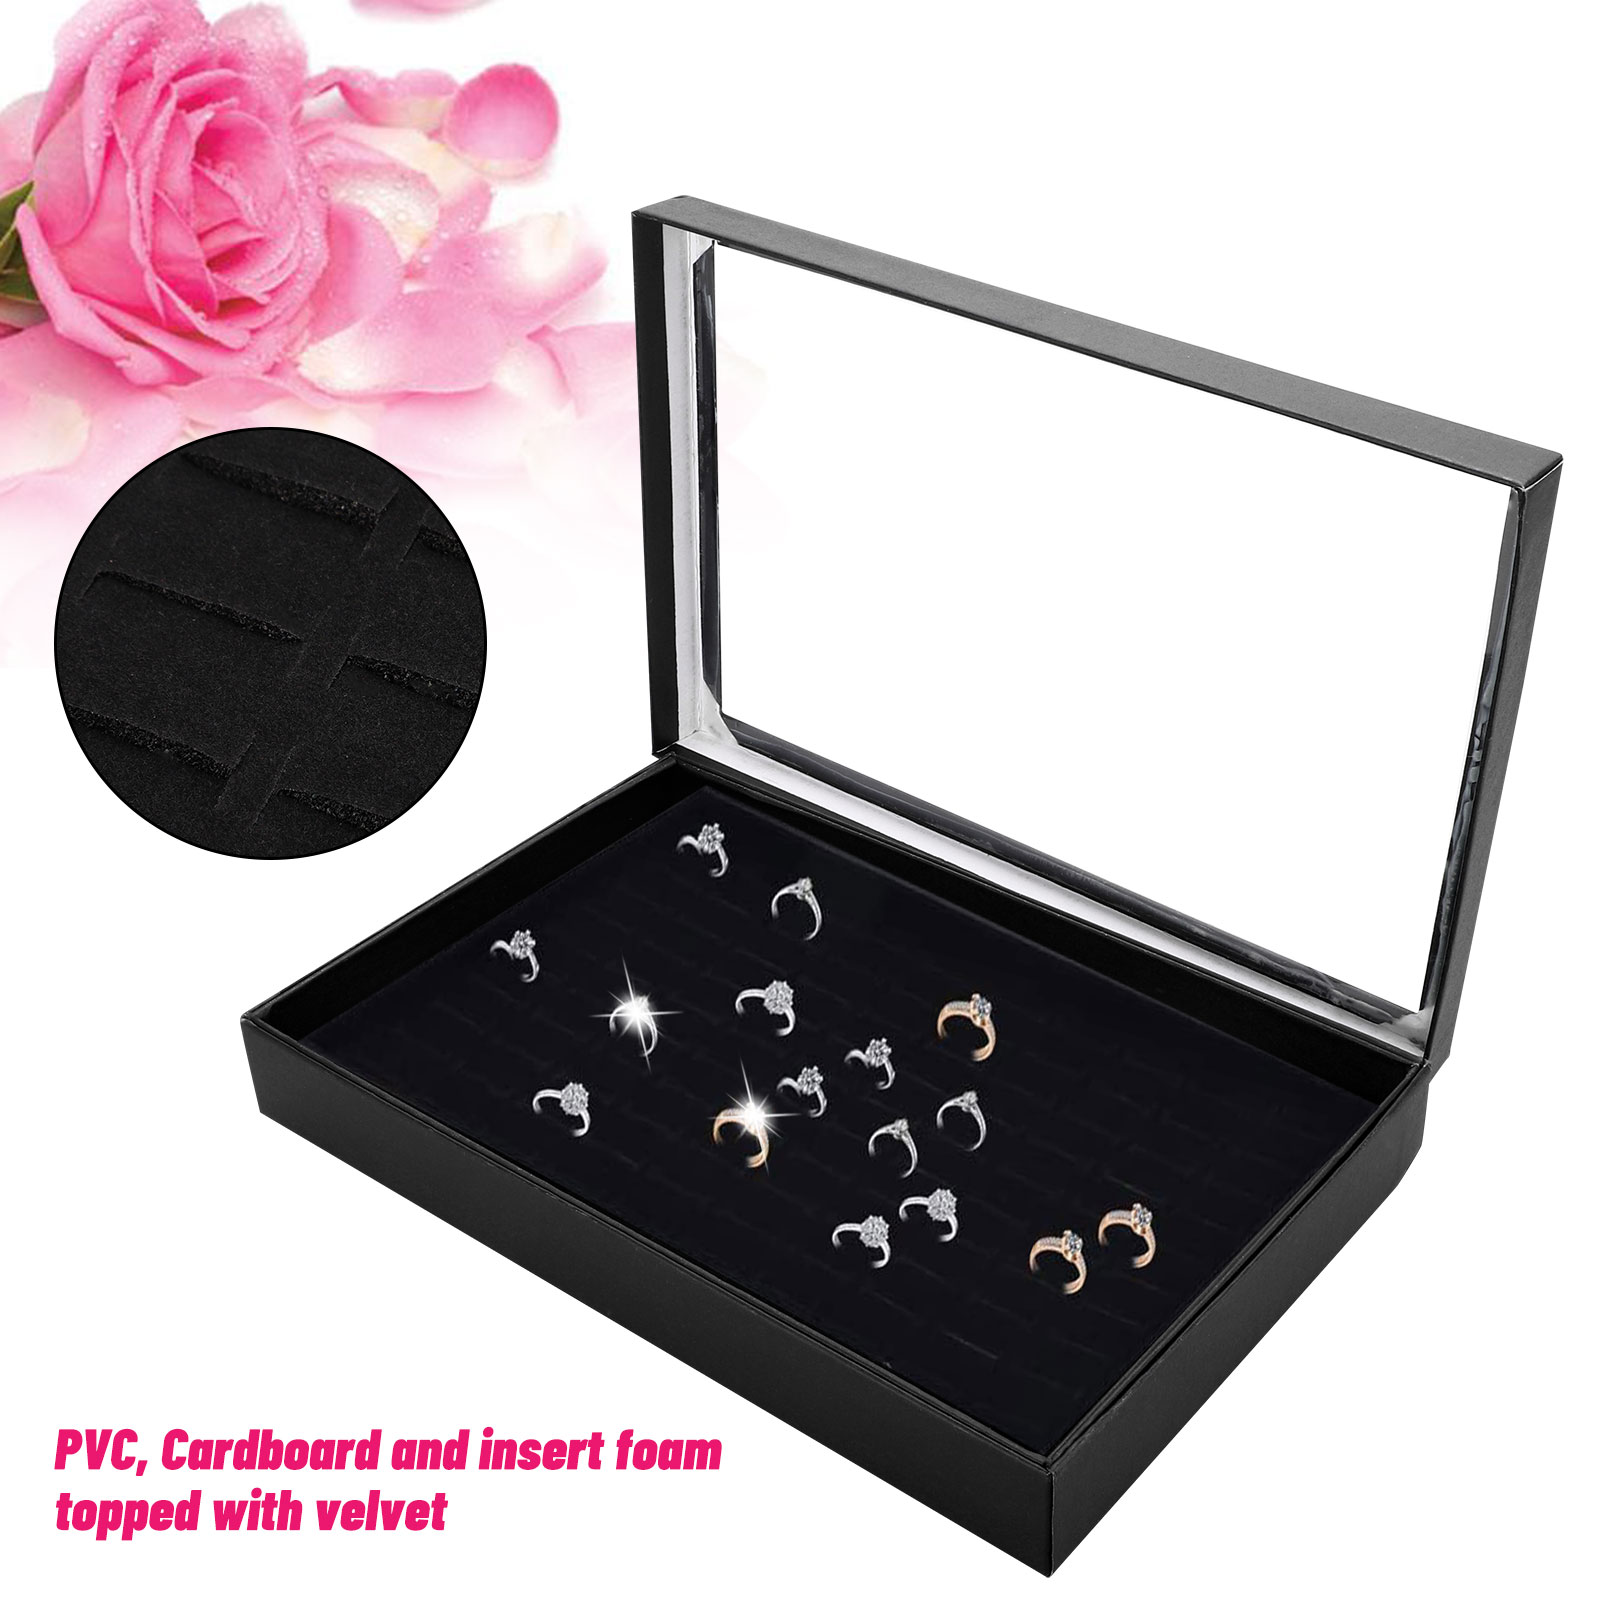 Fashion-Jewelry-Organizer-Box-Holder-Tray-Case-For-Ring-Earring-Storage-Display thumbnail 3